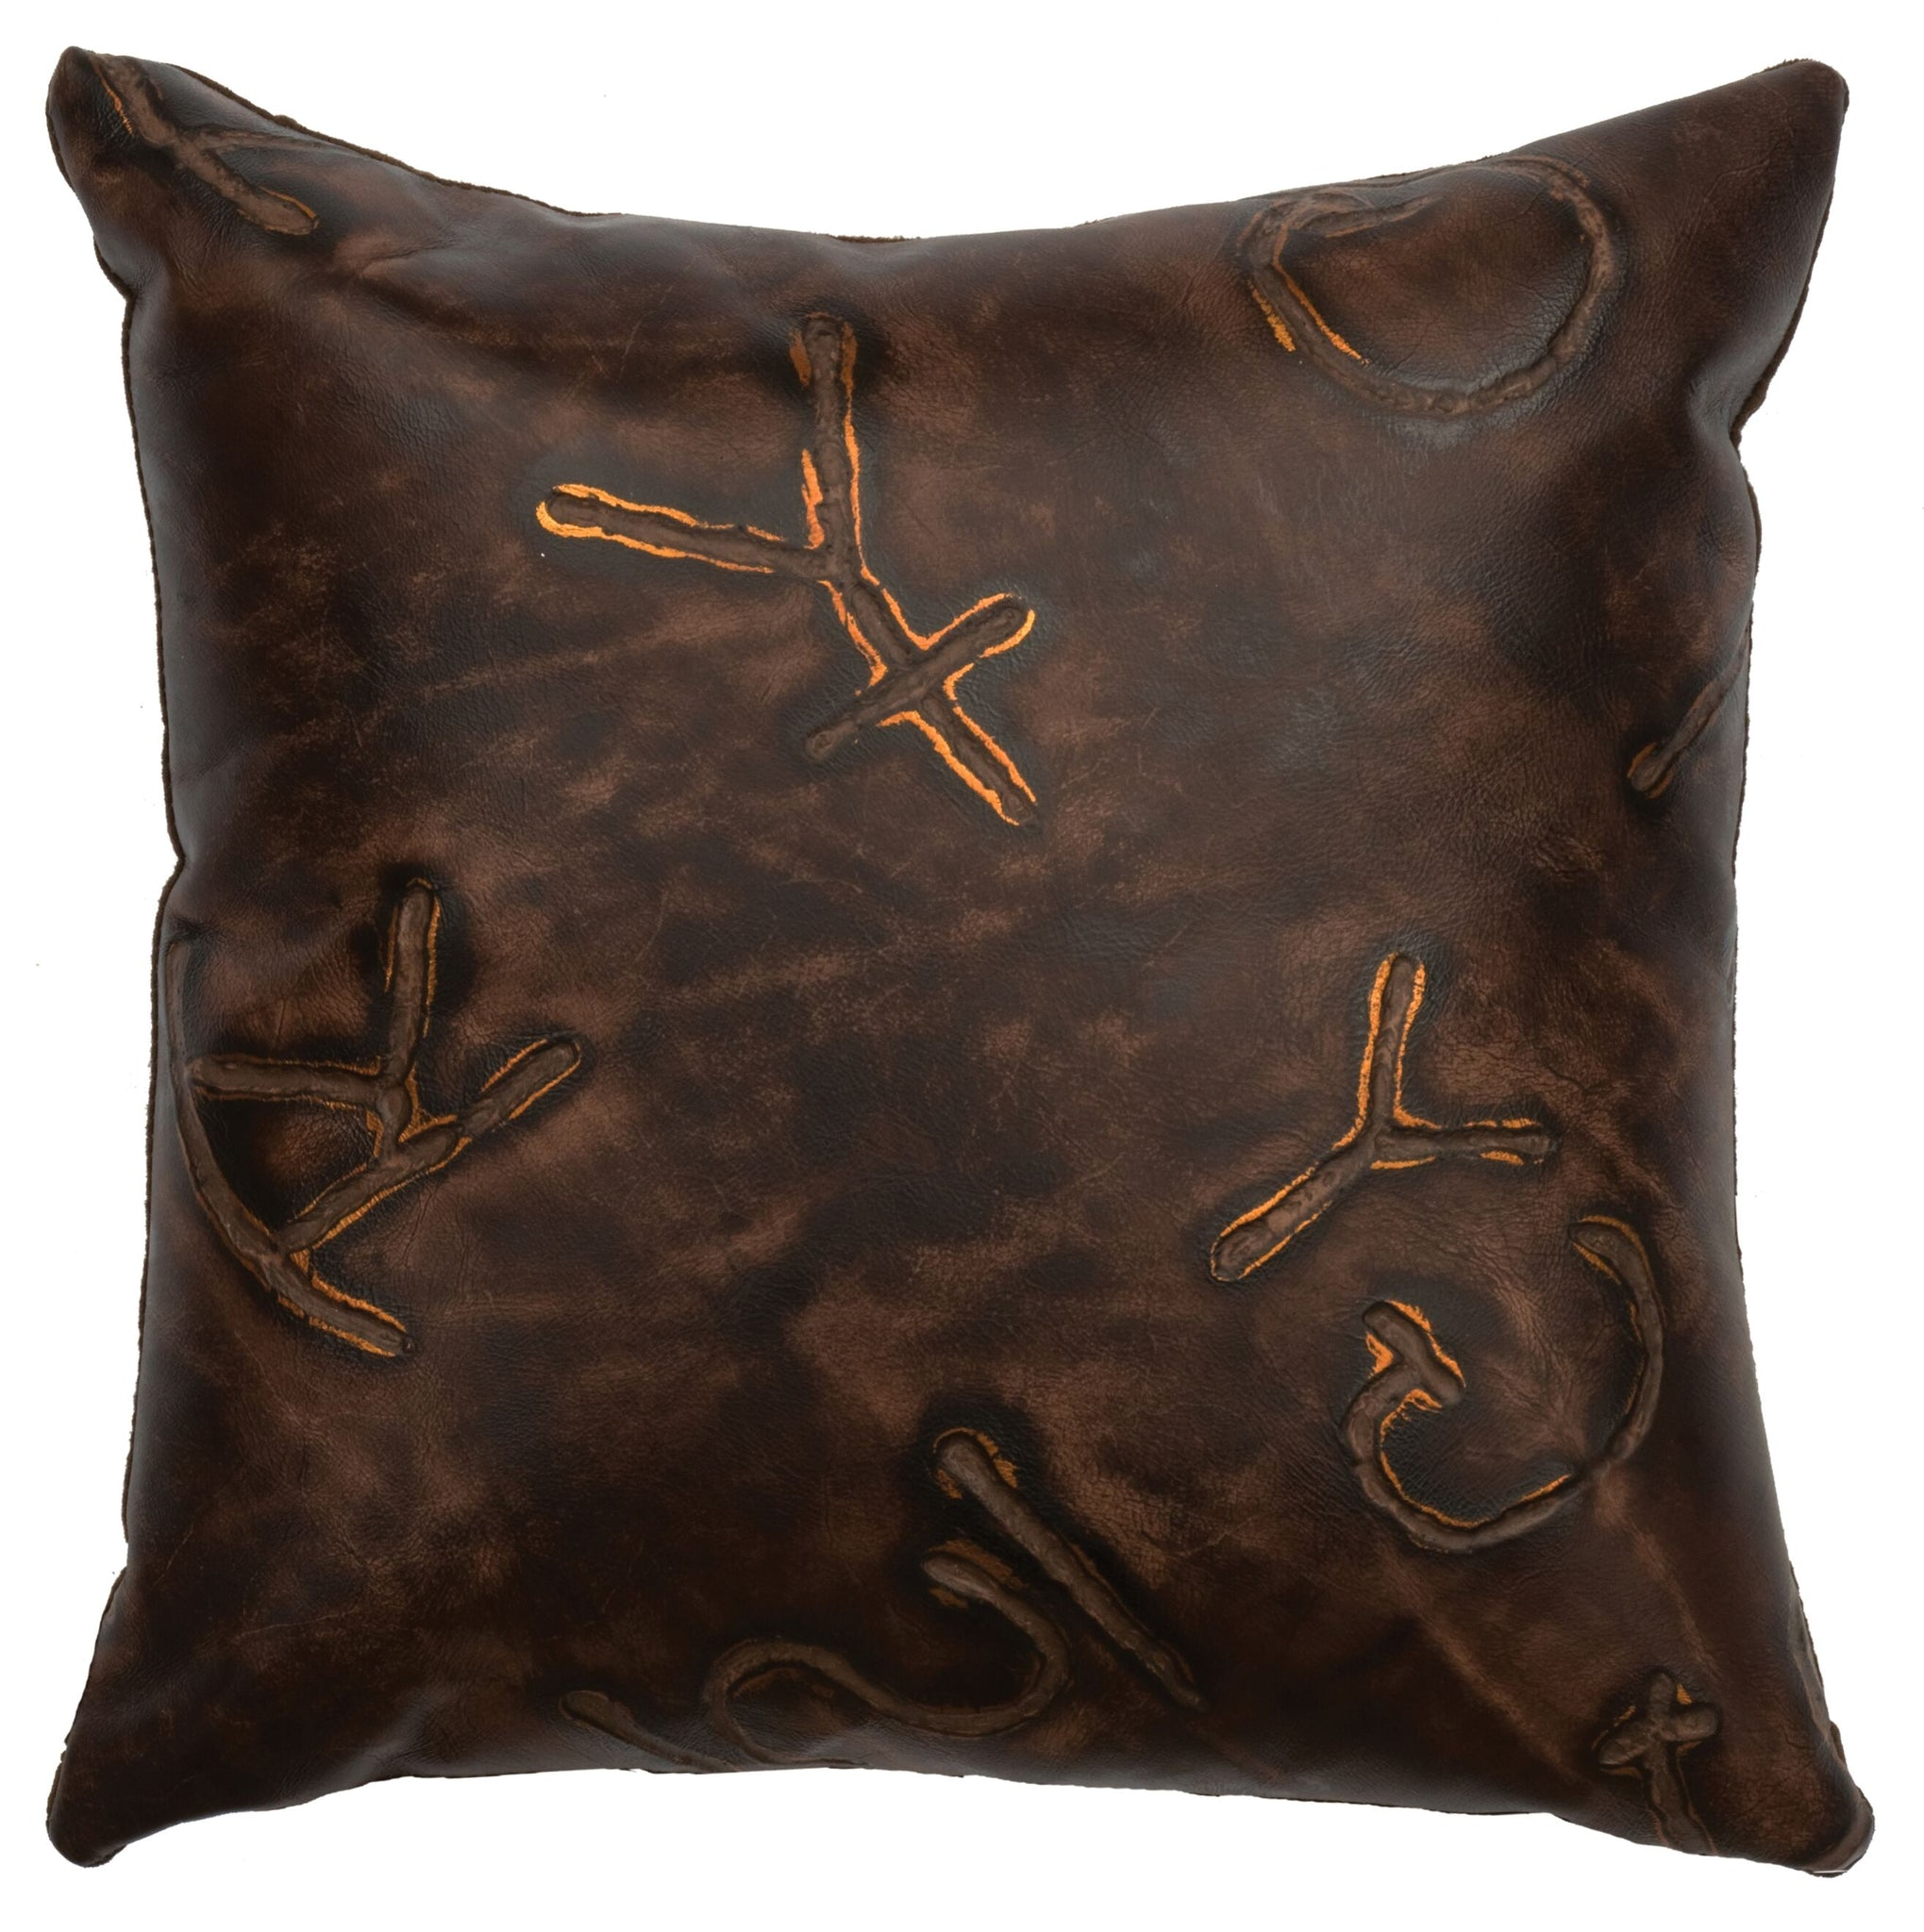 Leather Pillow Wooded River WD80202 - unique linens online